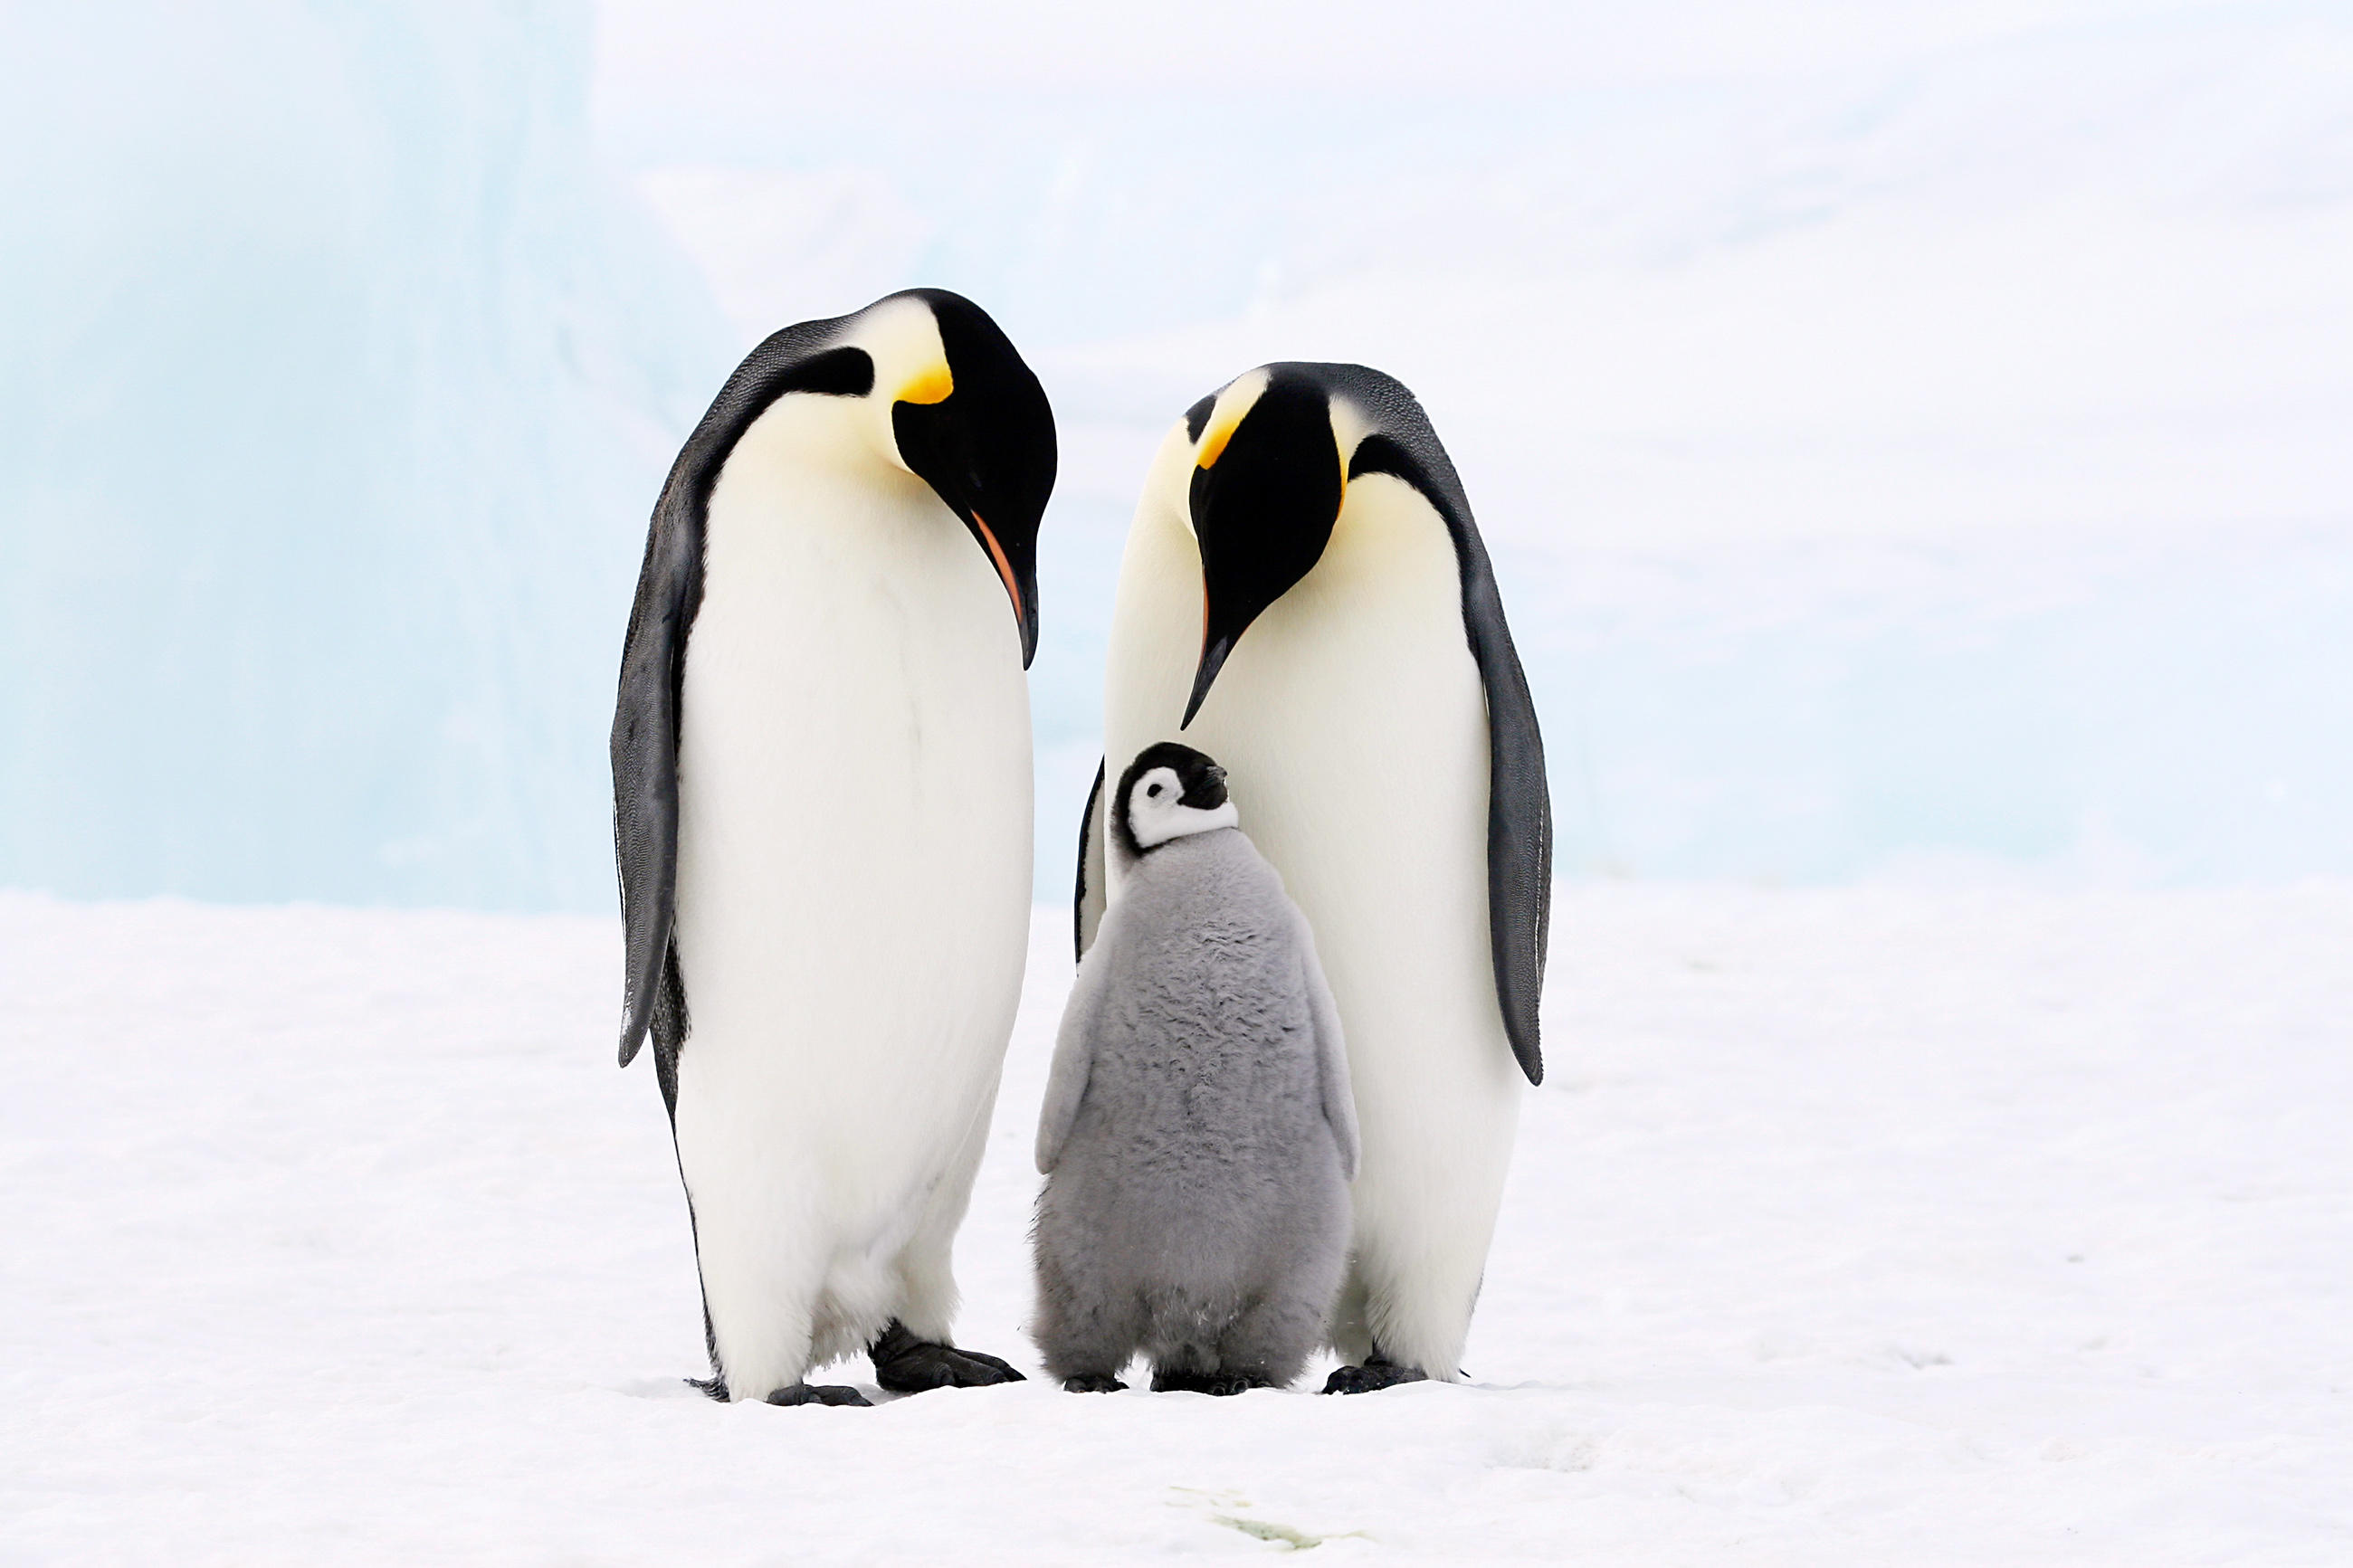 Penguin Backgrounds on Wallpapers Vista